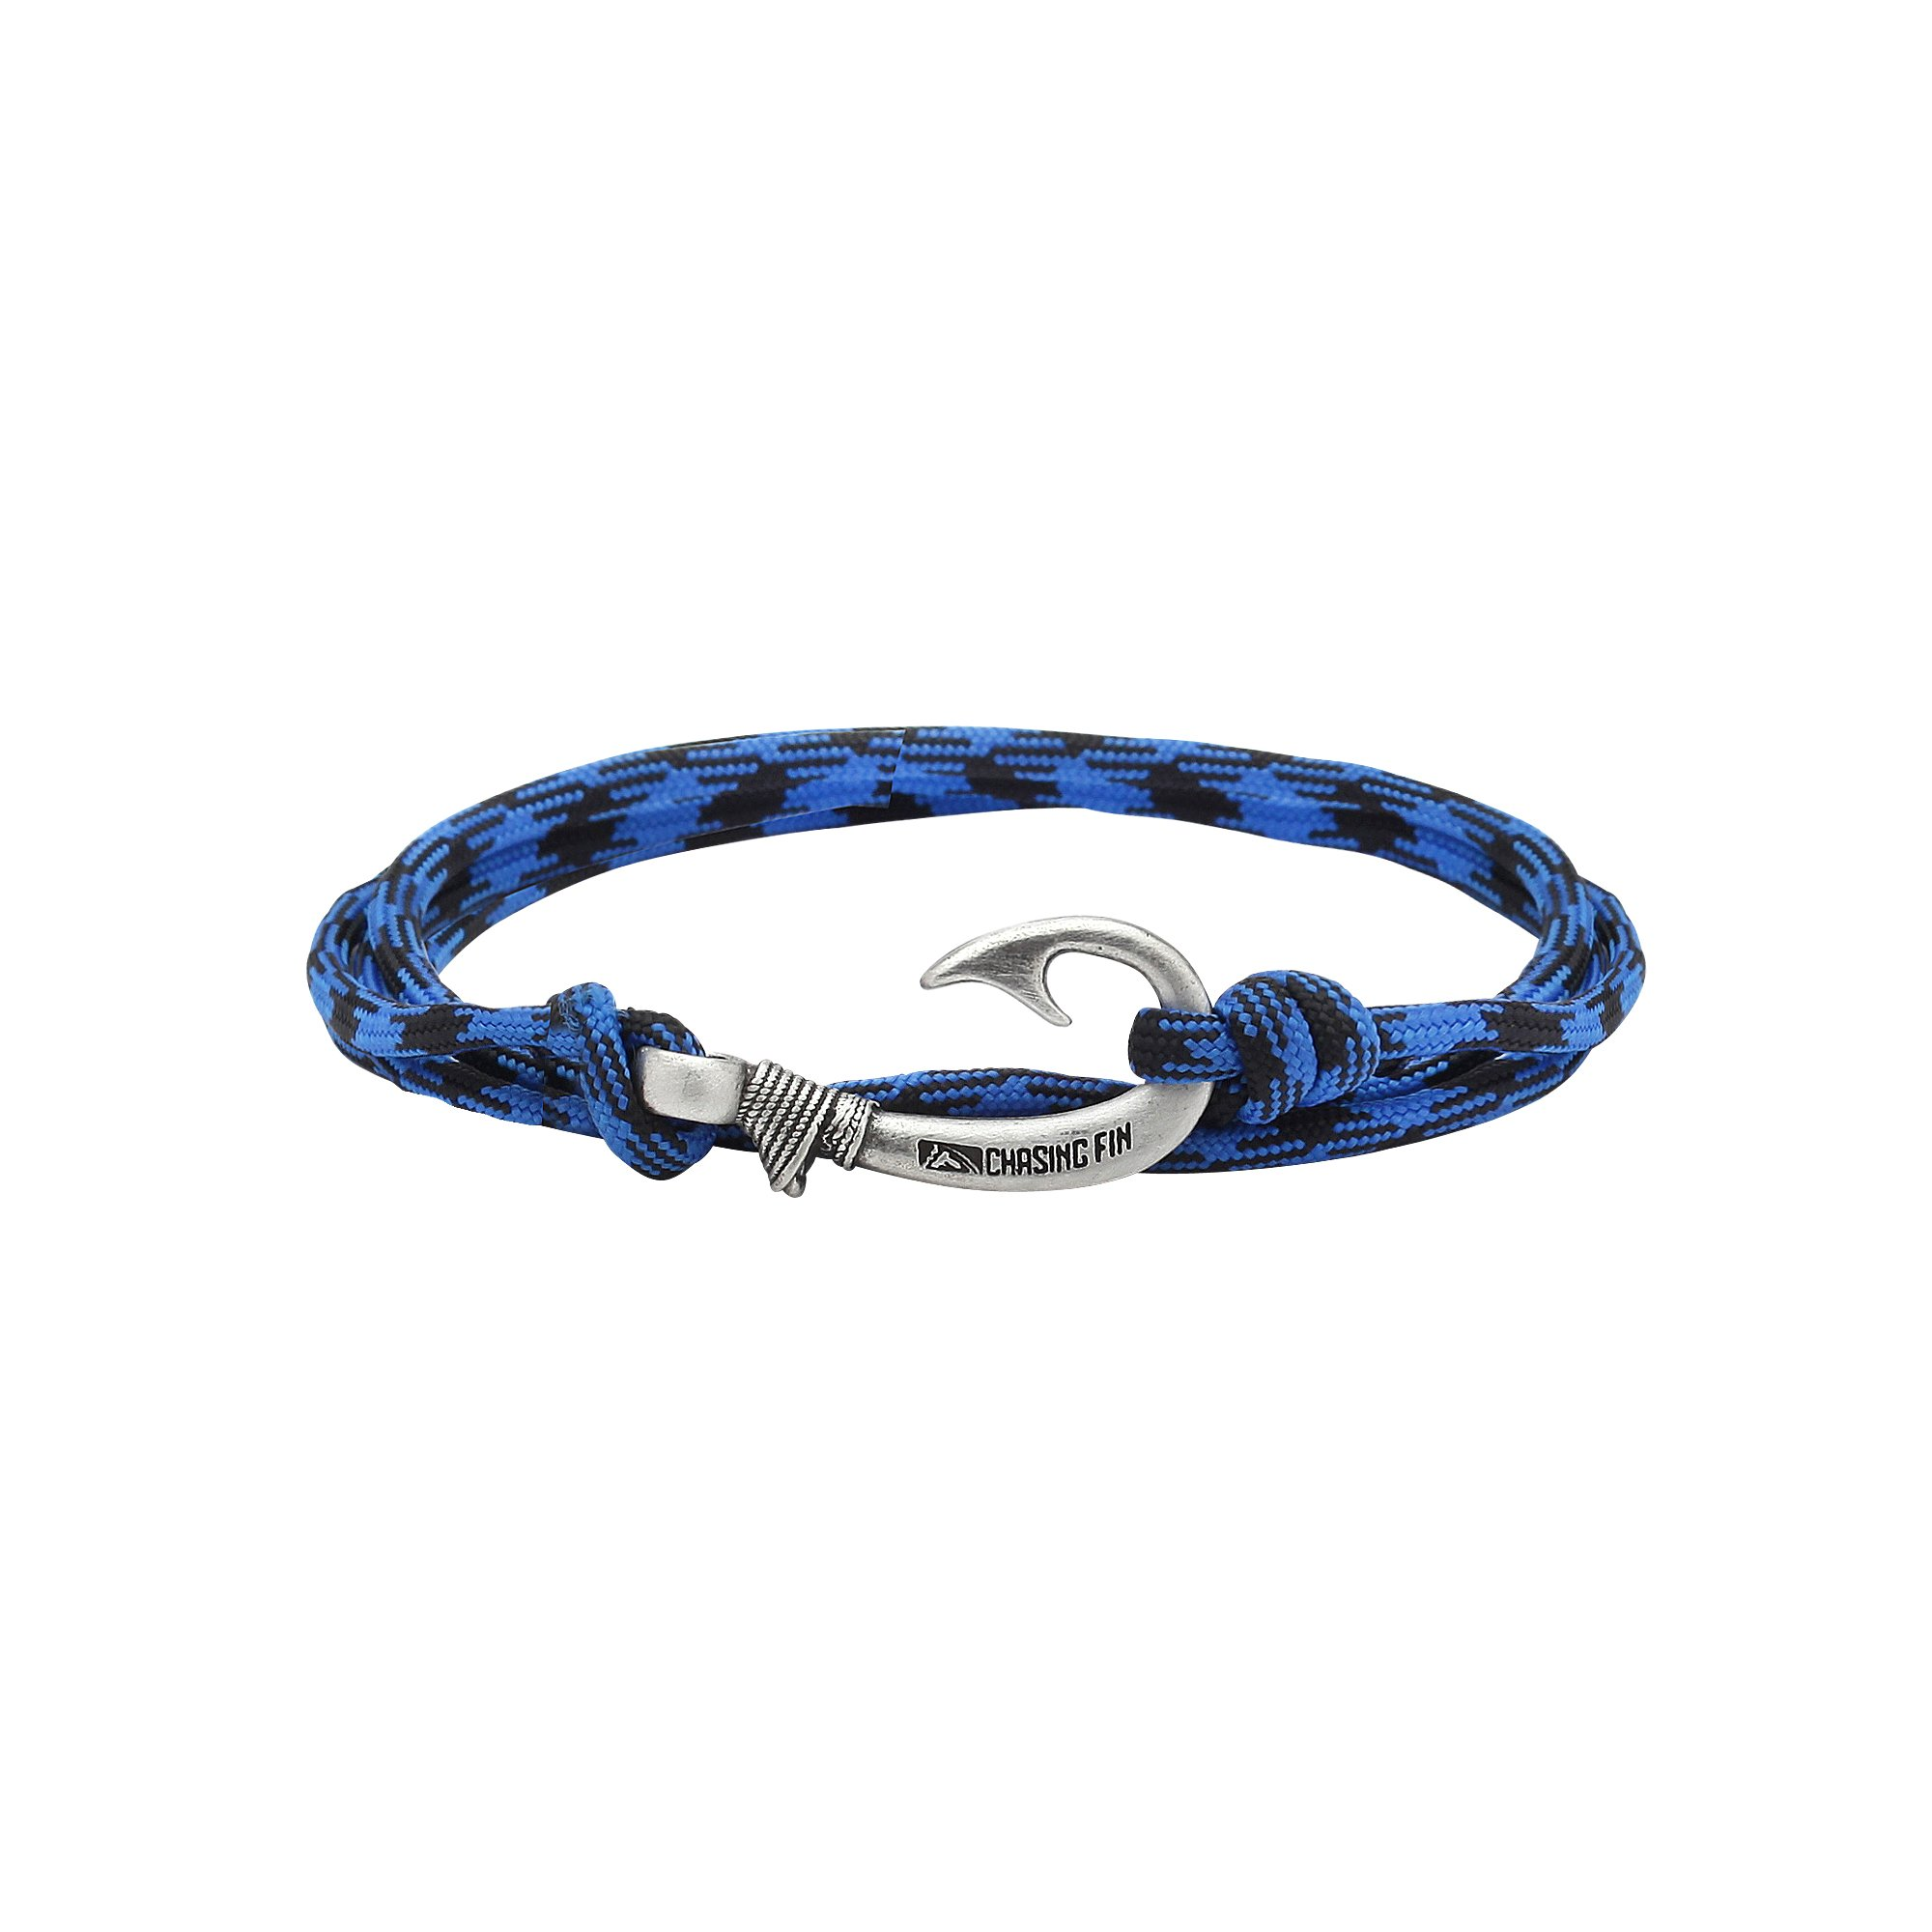 Chasing Fin Adjustable Bracelet 550 Military Paracord with Fish Hook Pendant, Bruiser